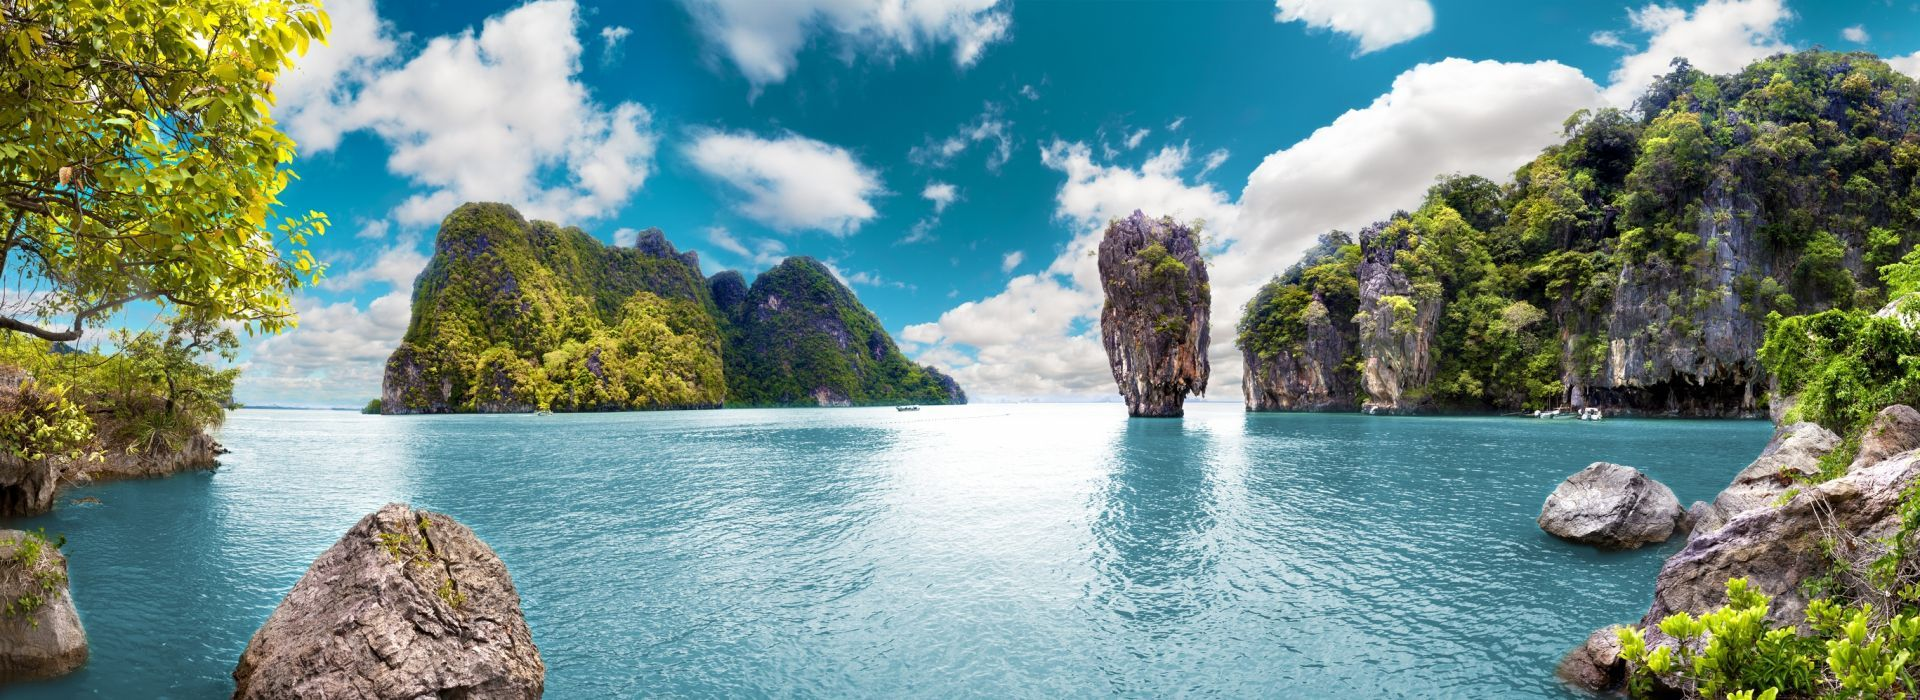 Tubing Tours in Thailand